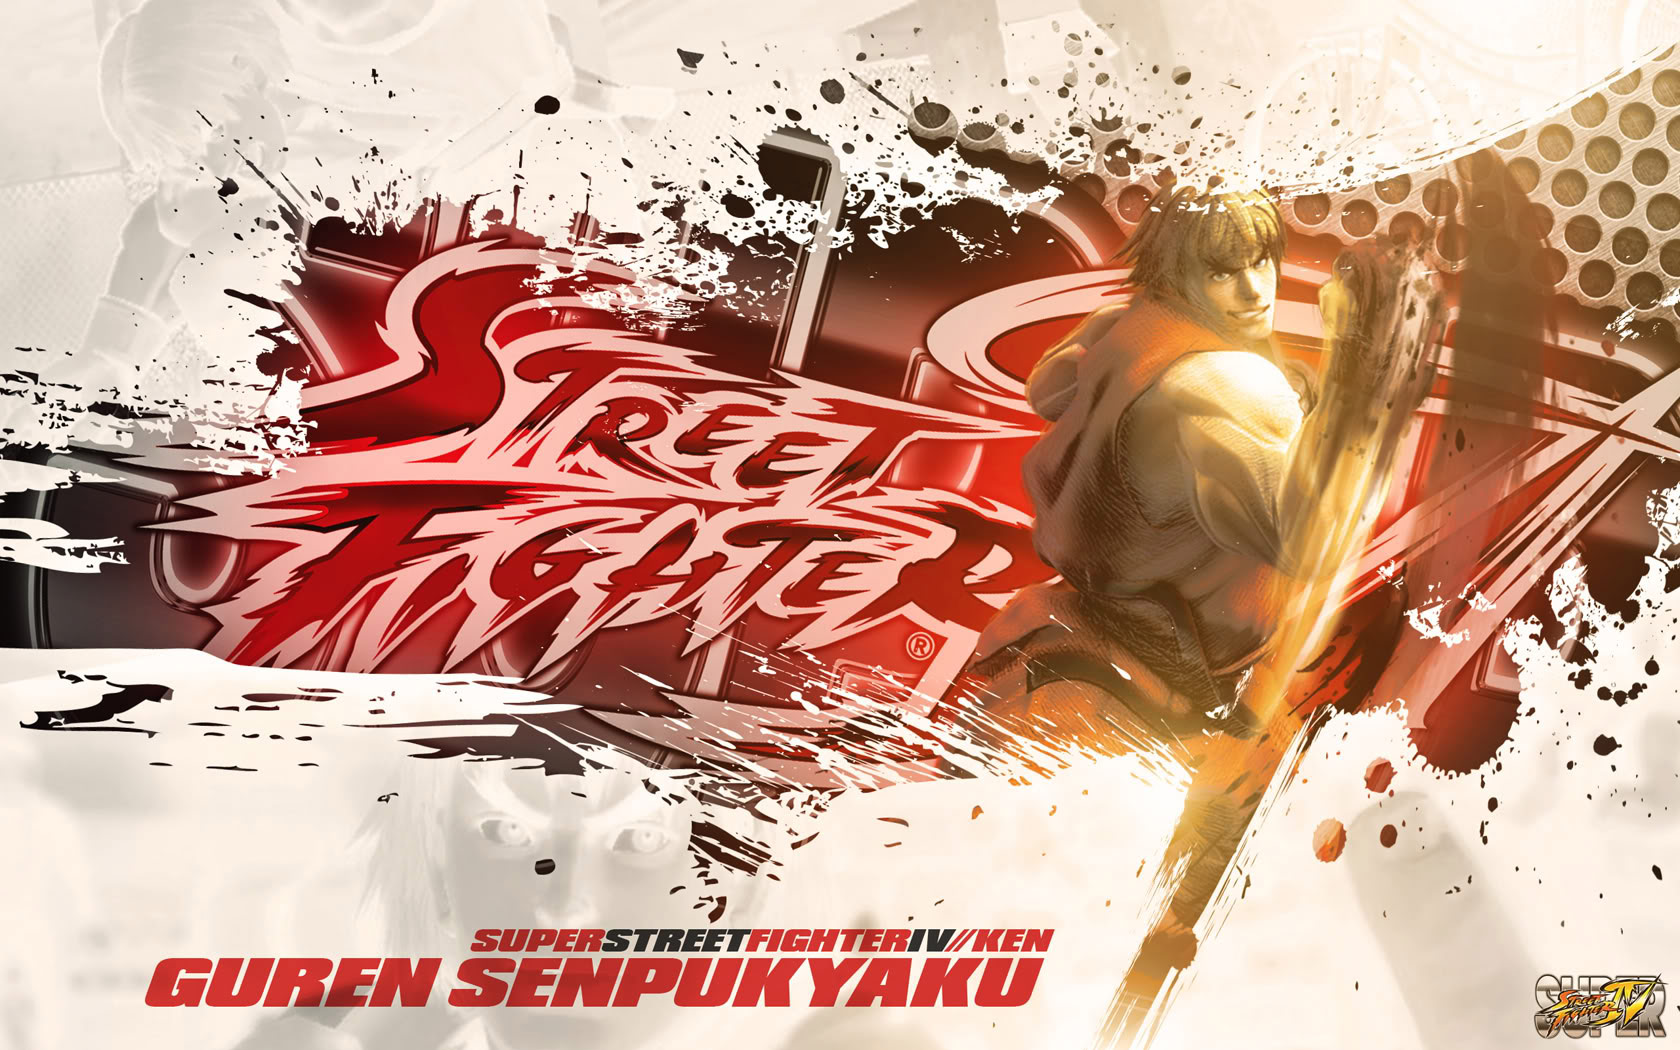 Ken Super Street Fighter 4 wallpaper by BossLogic